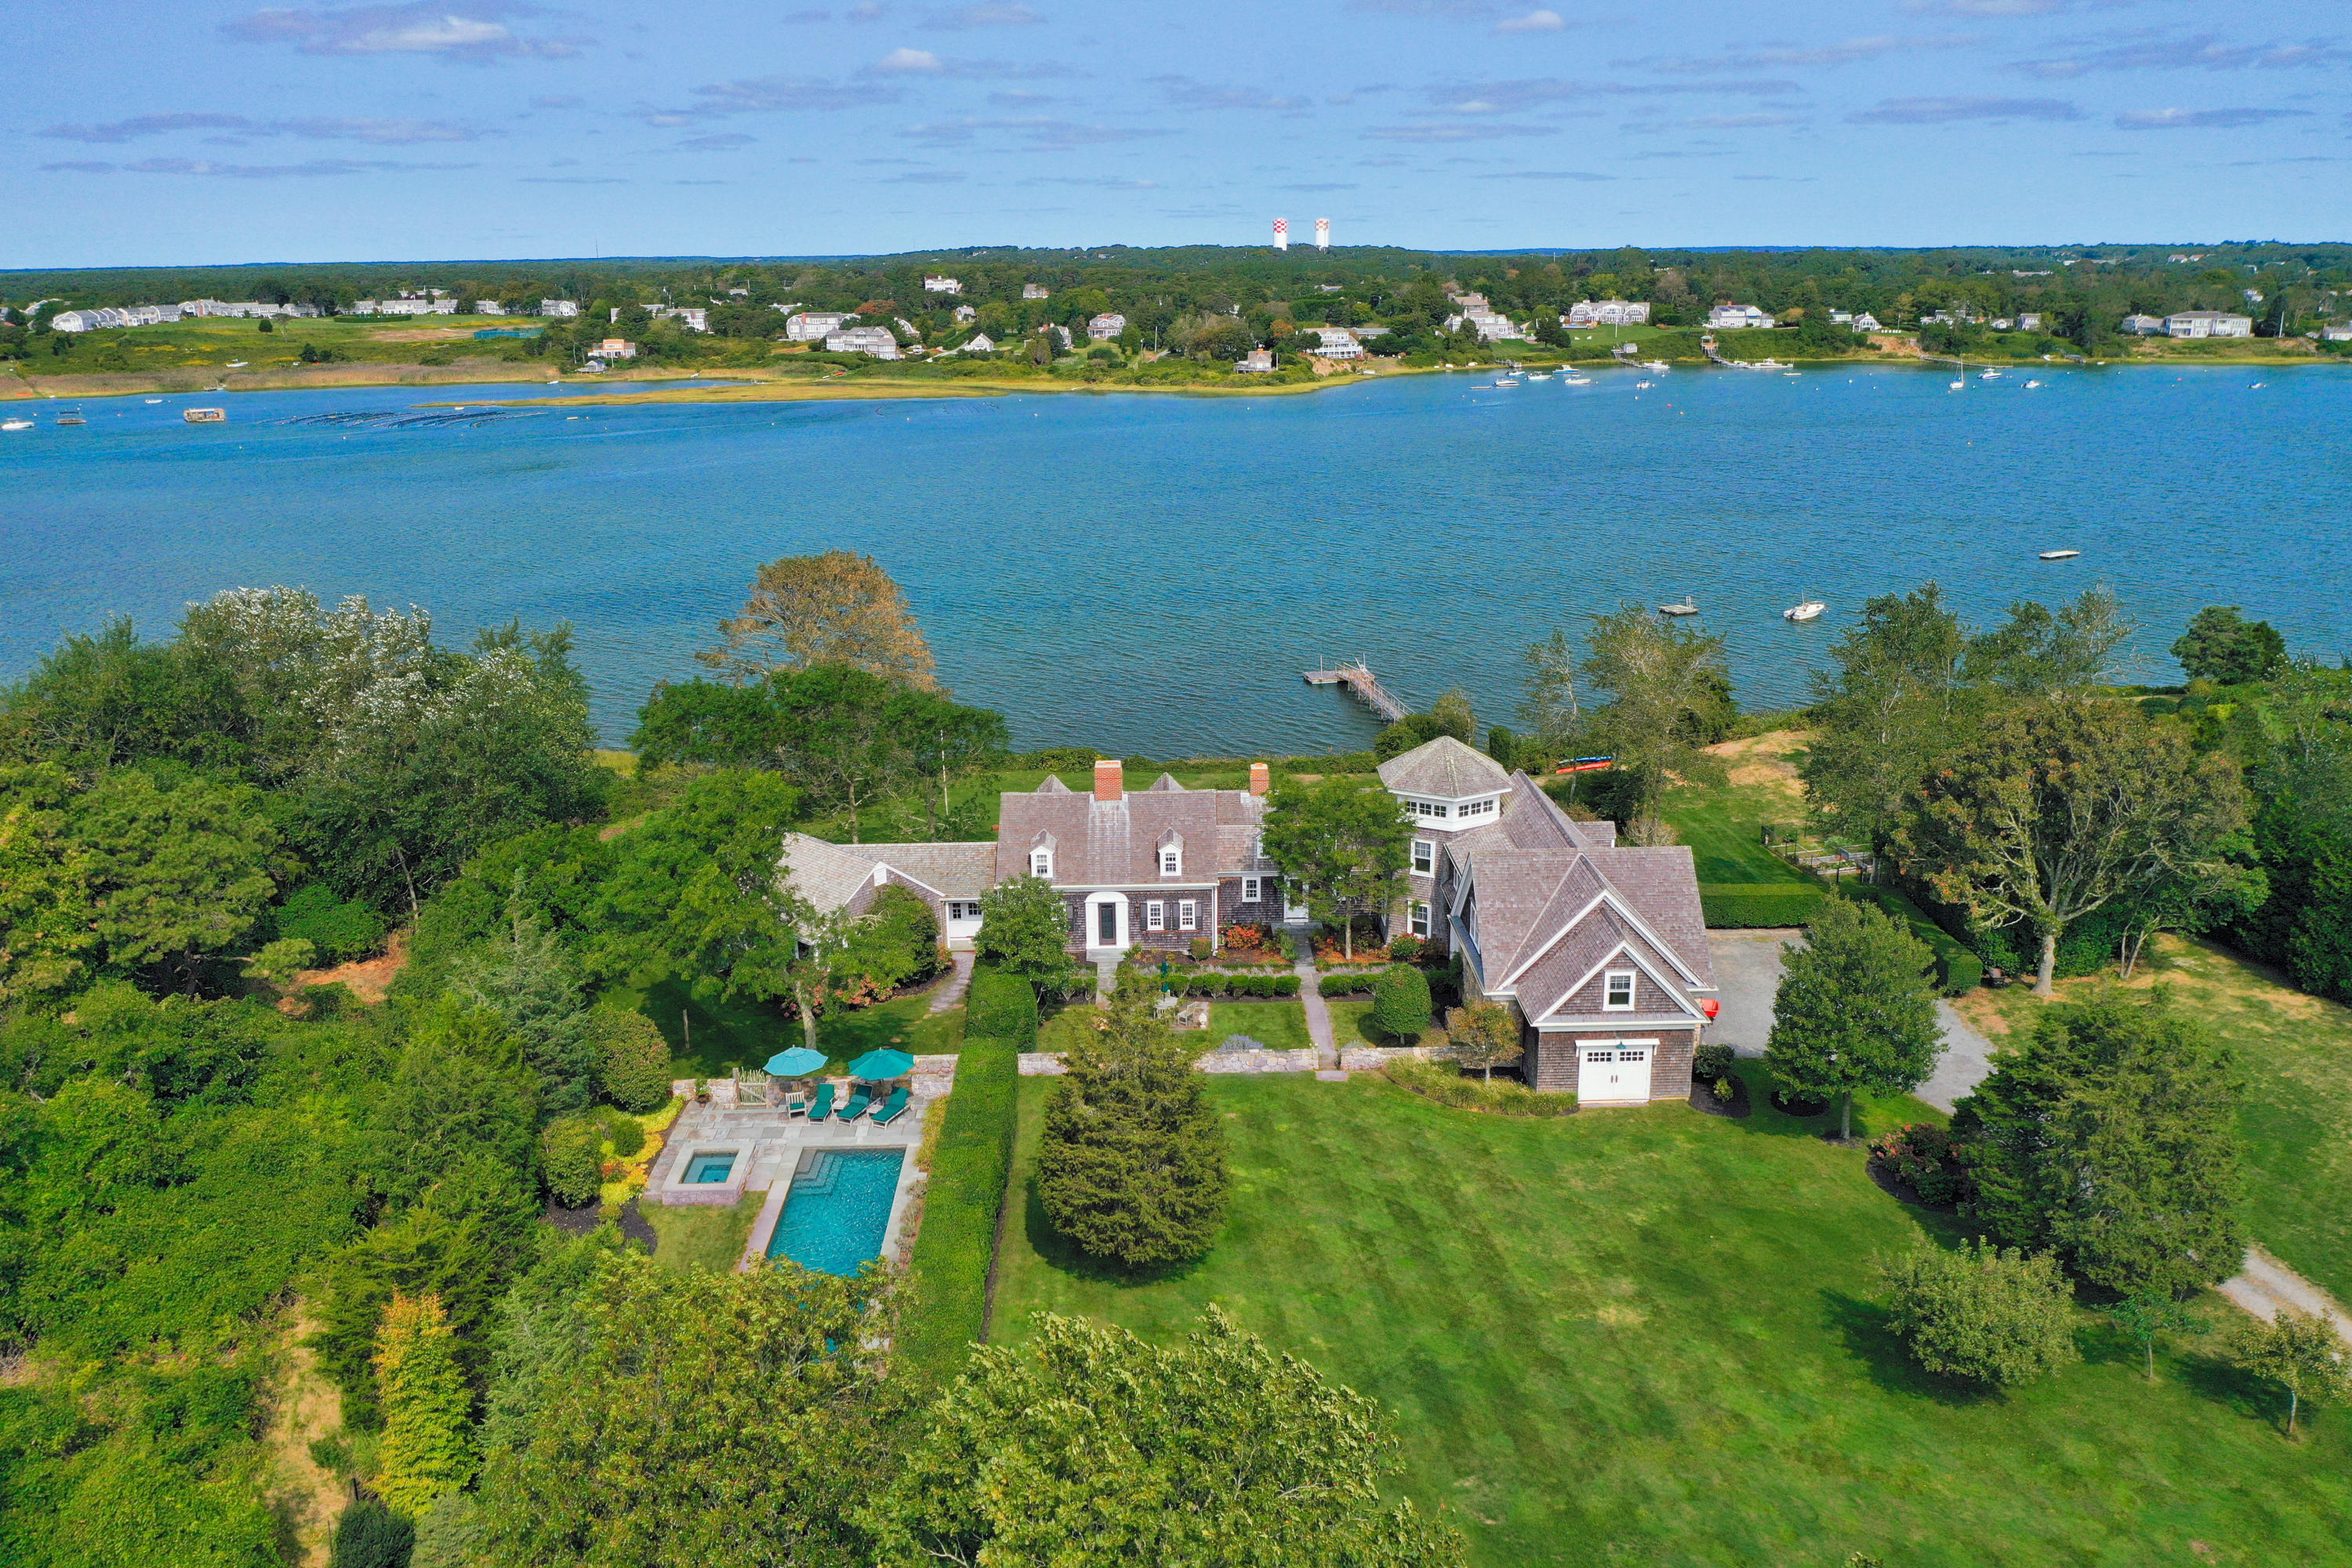 click to view more details 230 Cedar Street, Chatham, MA 02633